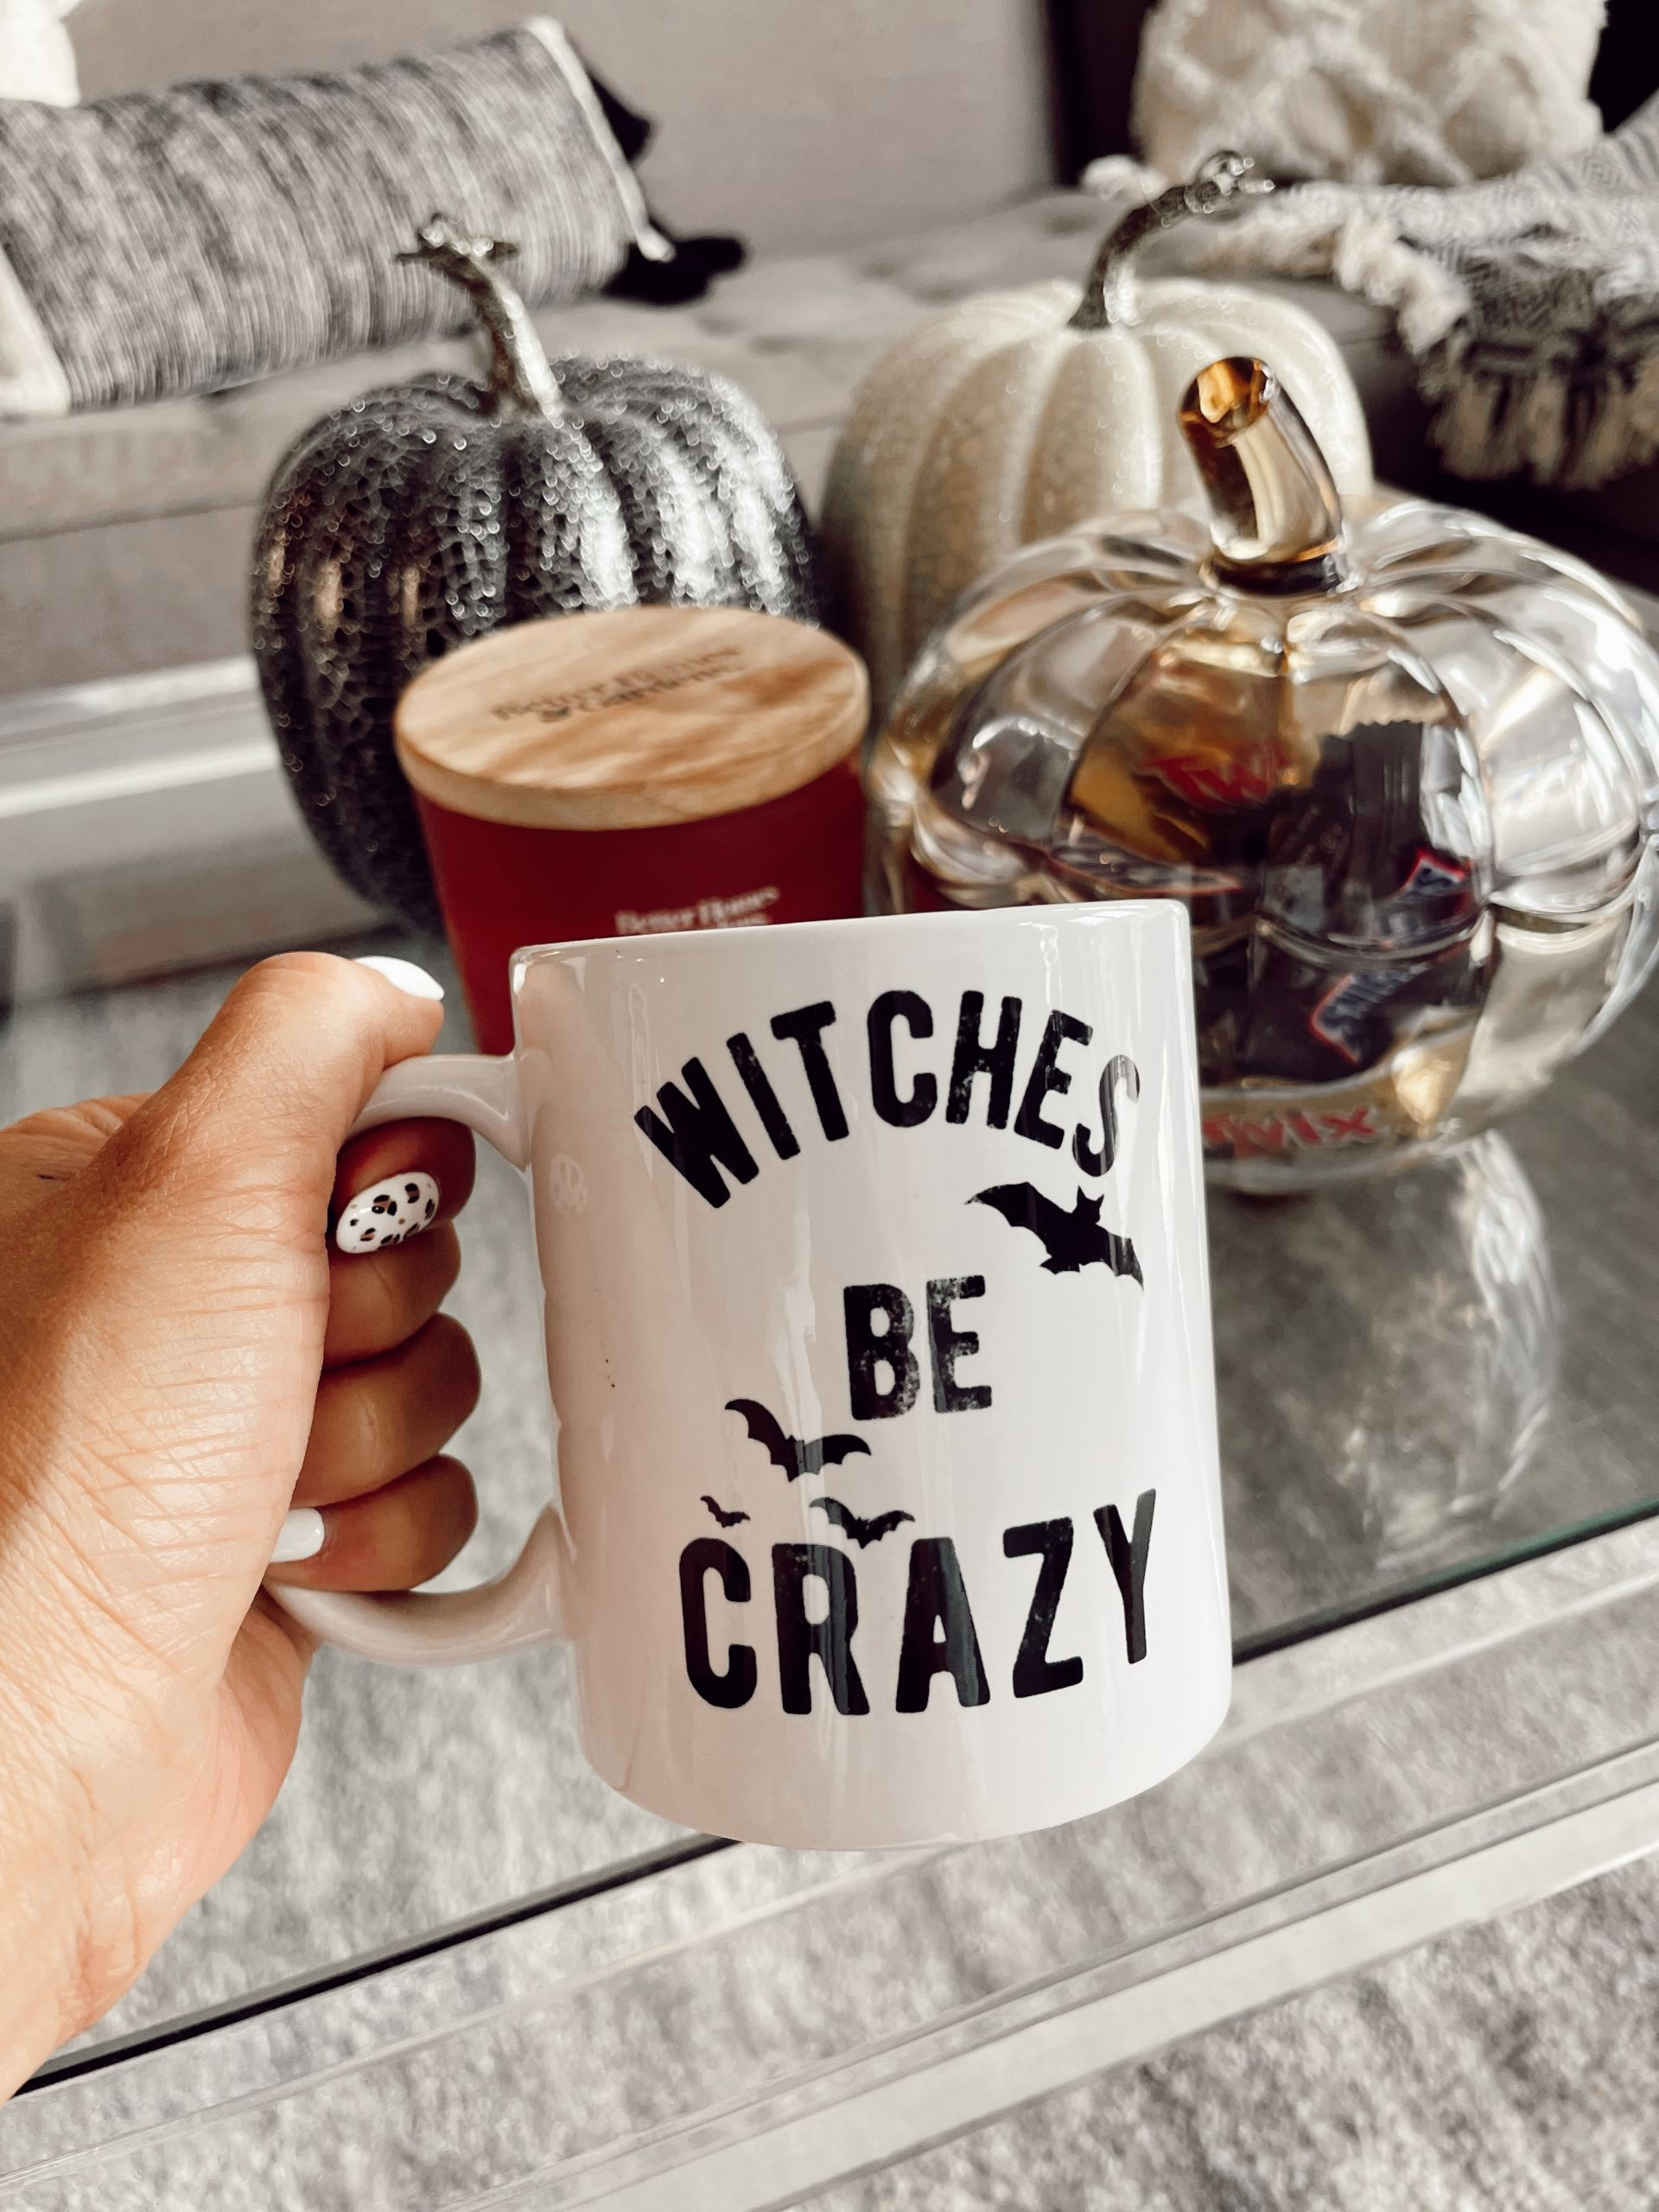 witches be crazy mug, halloween mug, fall home decor, subtle Subtle Touches of Fall to your Home, home decor inspiration, fall home inspiration, black and white fall decor, glam fall decor, neutralfall decor, pretty pumpkindecor, fall decor ideas, pretty fall decor, Red Soles and Red Wine, Jennifer Worman